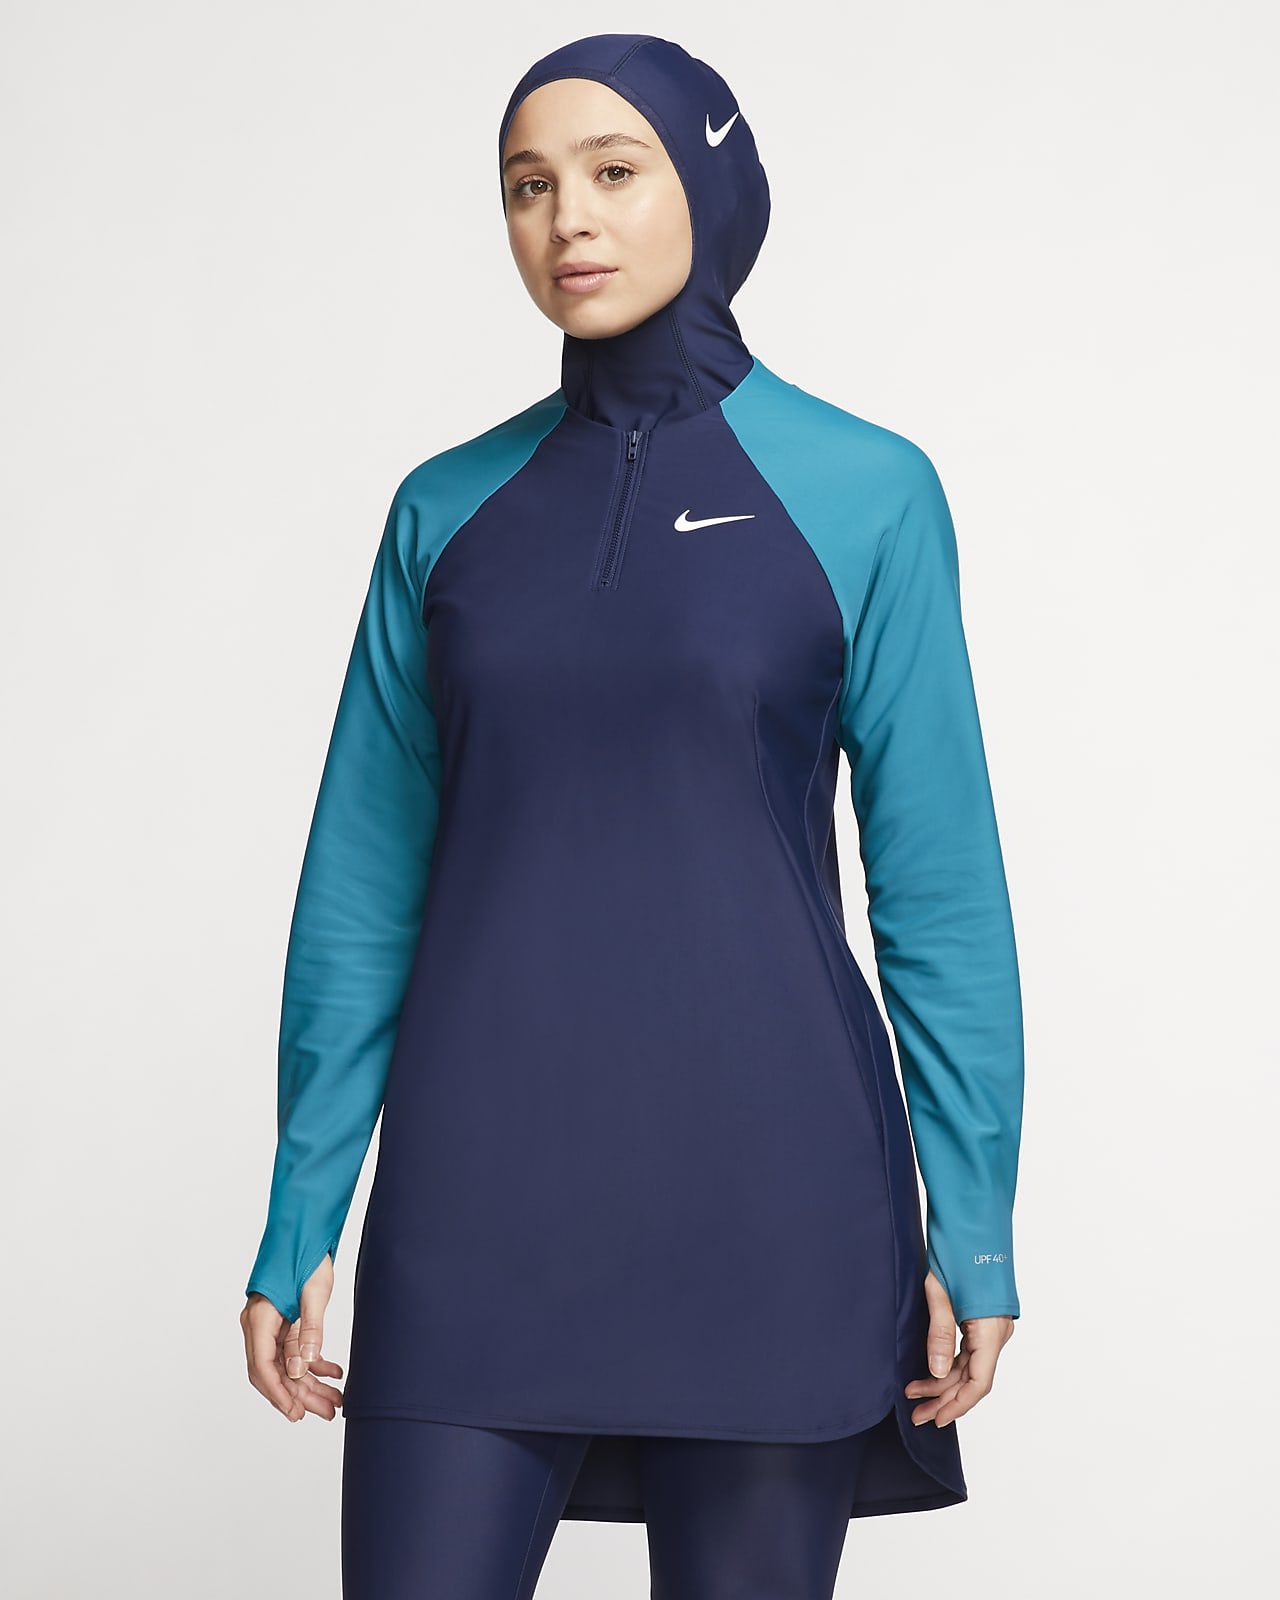 Nike Victory Women's Full-Coverage Swim Tunic